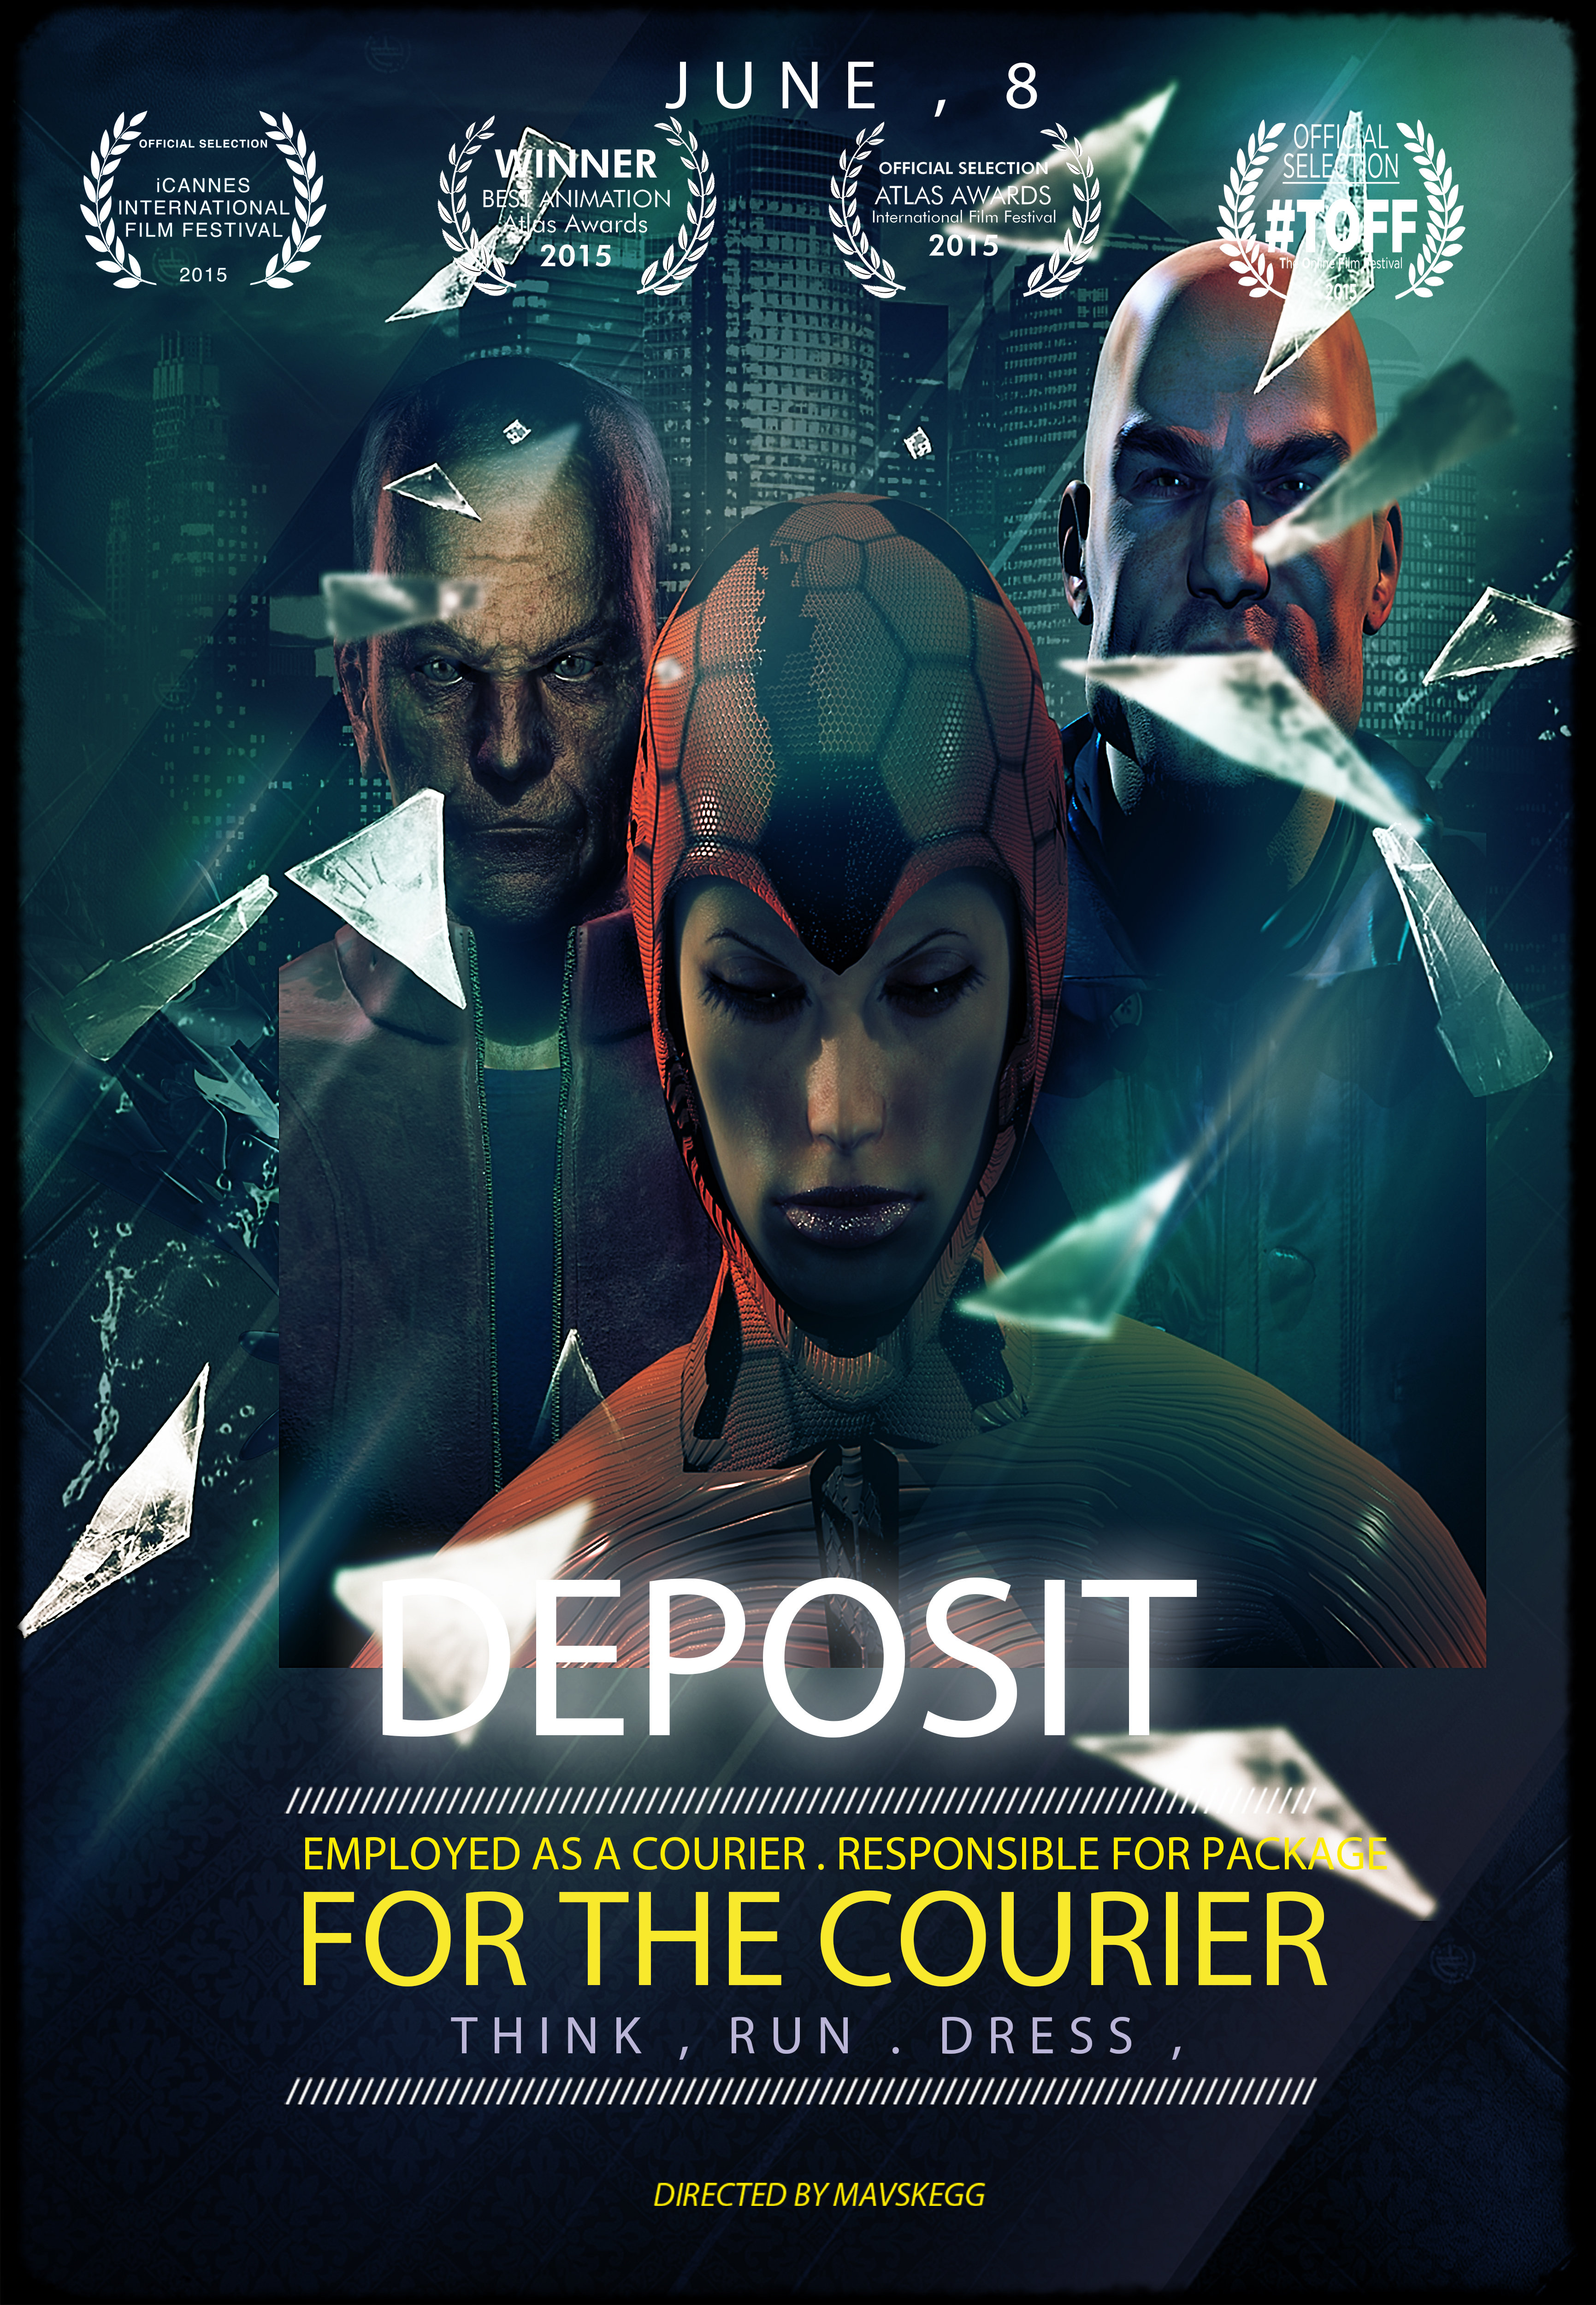 Deposit for the Courier